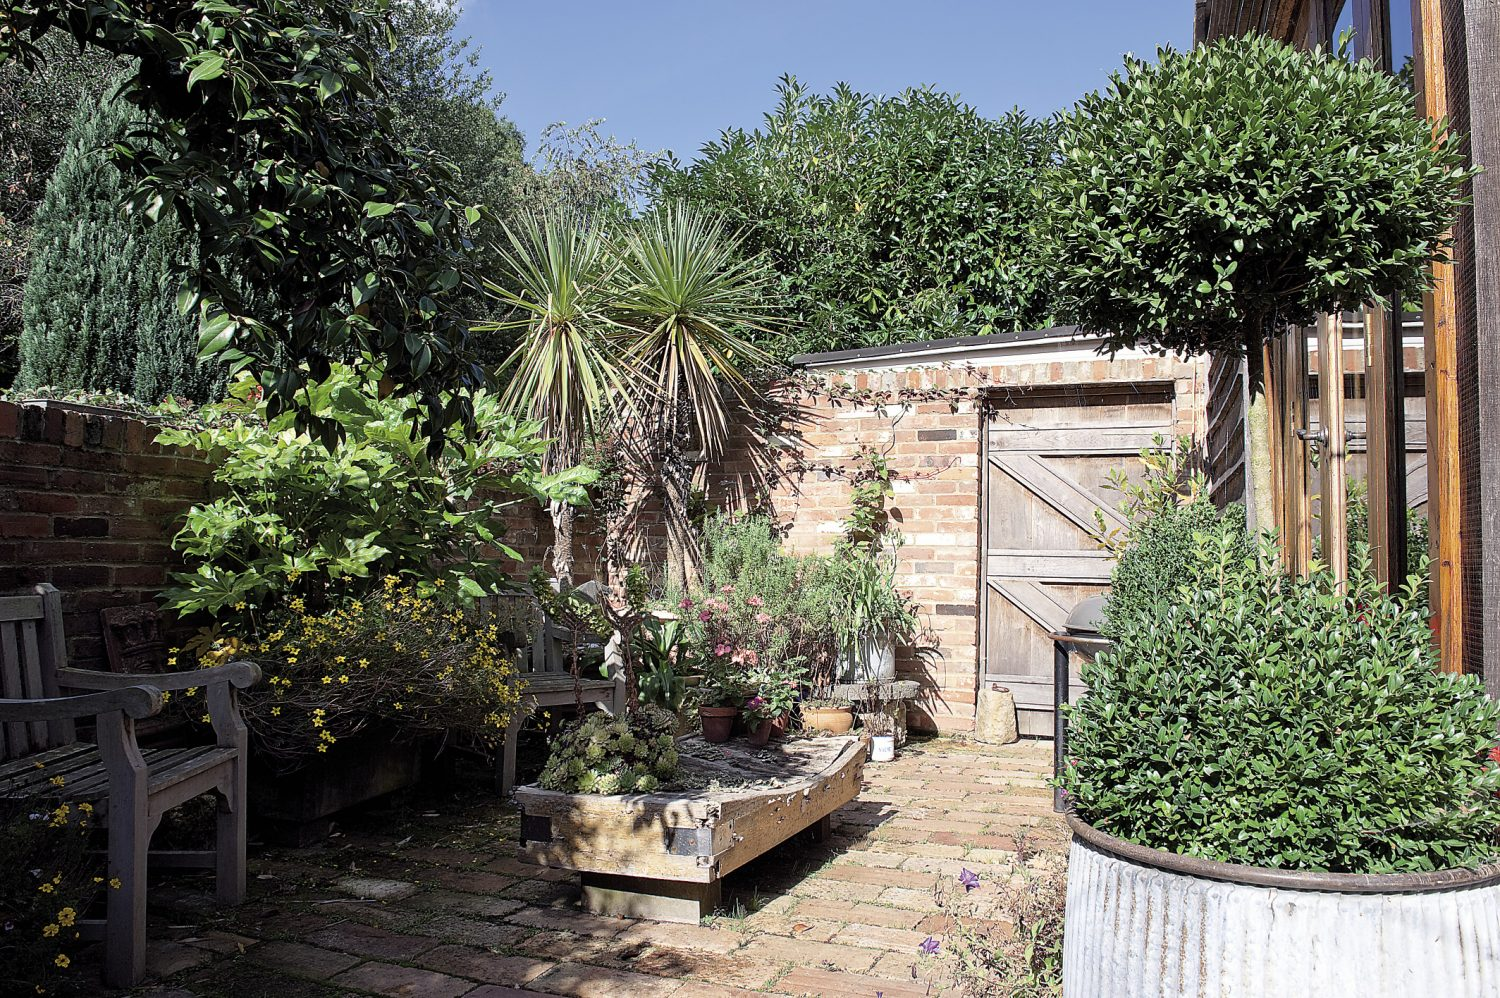 The walled, partially-decked courtyard garden is the perfect summer hideaway